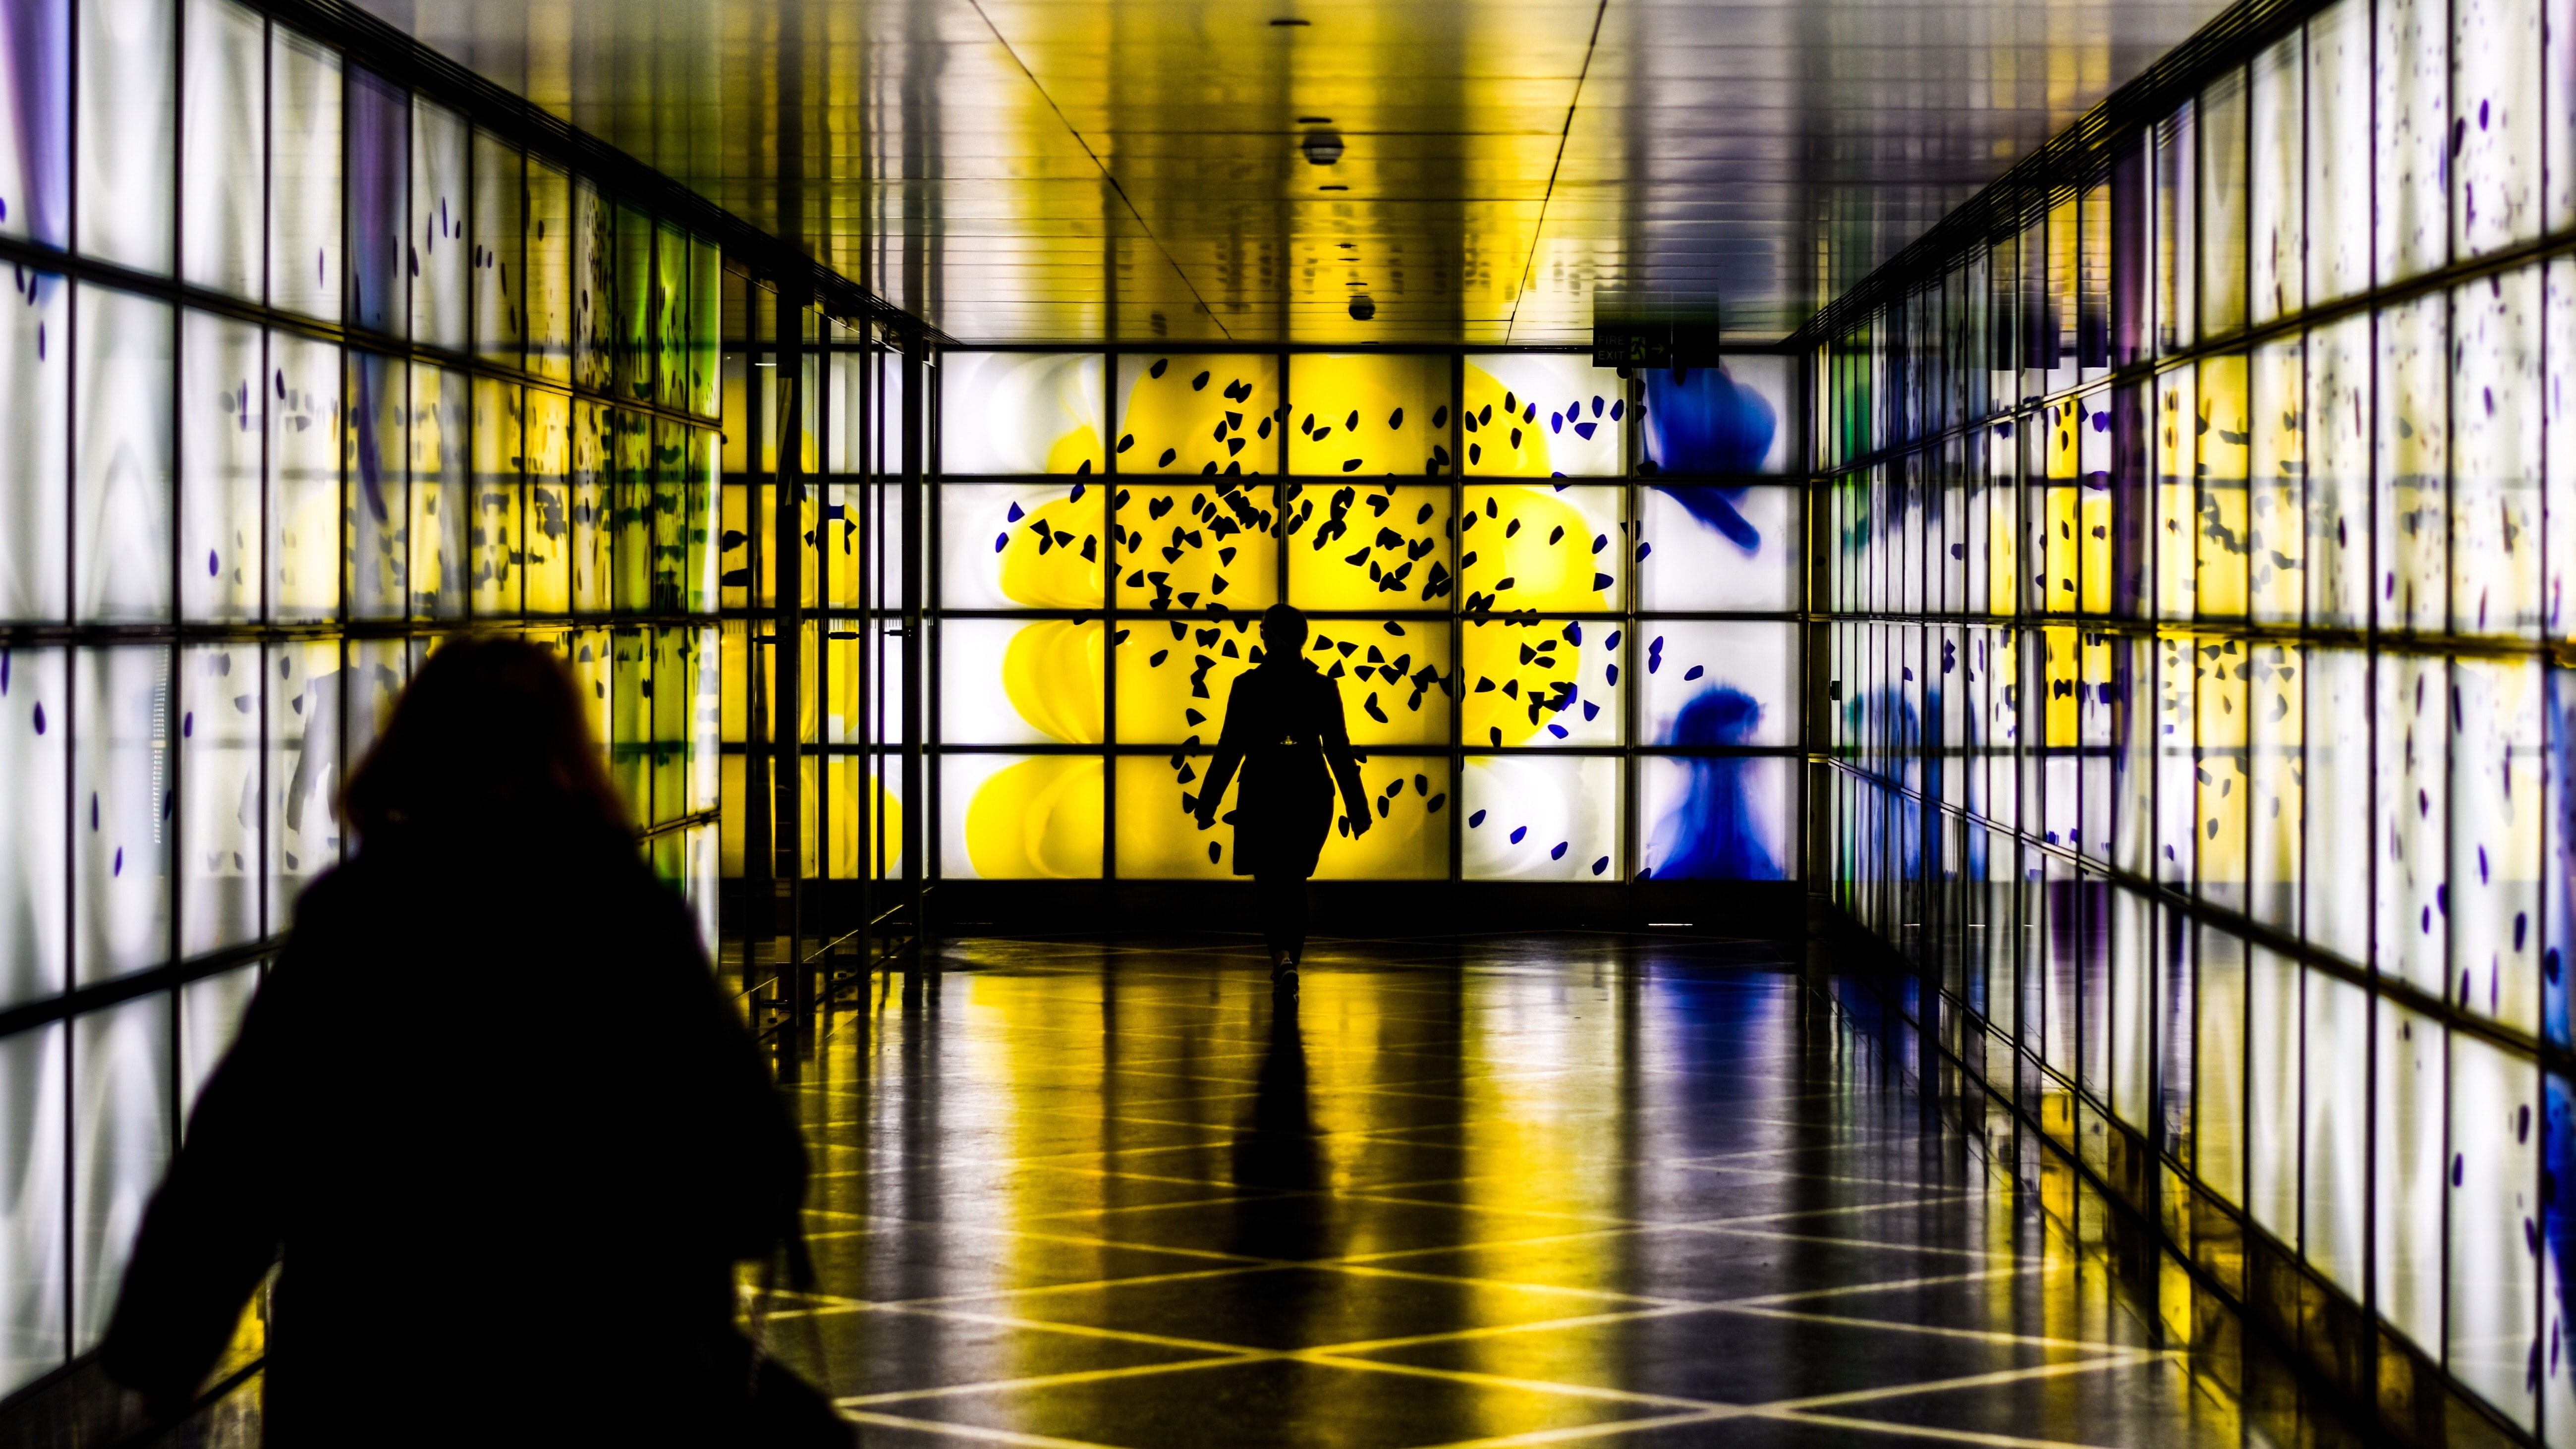 silhouette photography of person walking in room